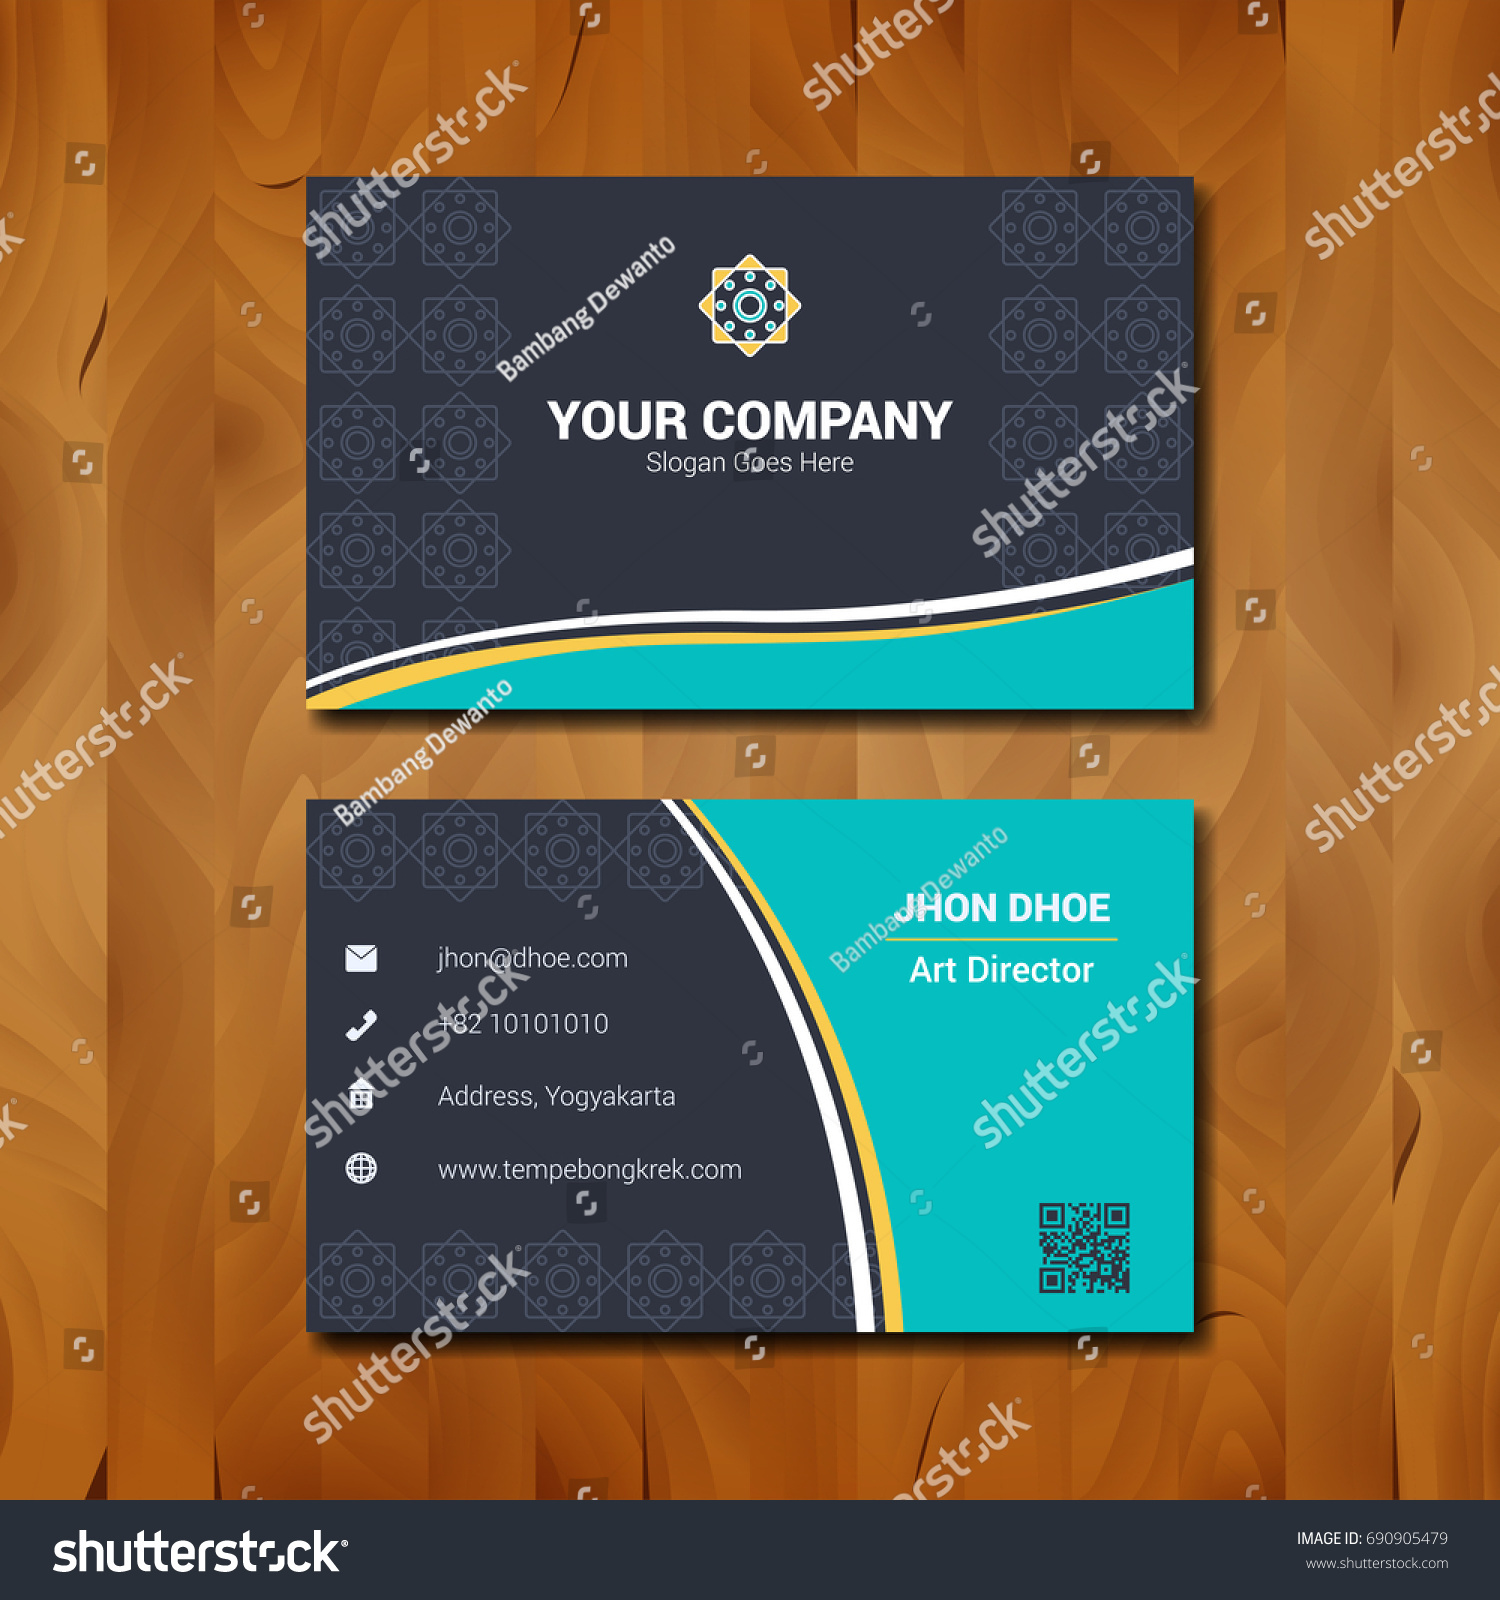 Simple Business Card Template Design Company Stock Vector 690905479 ...